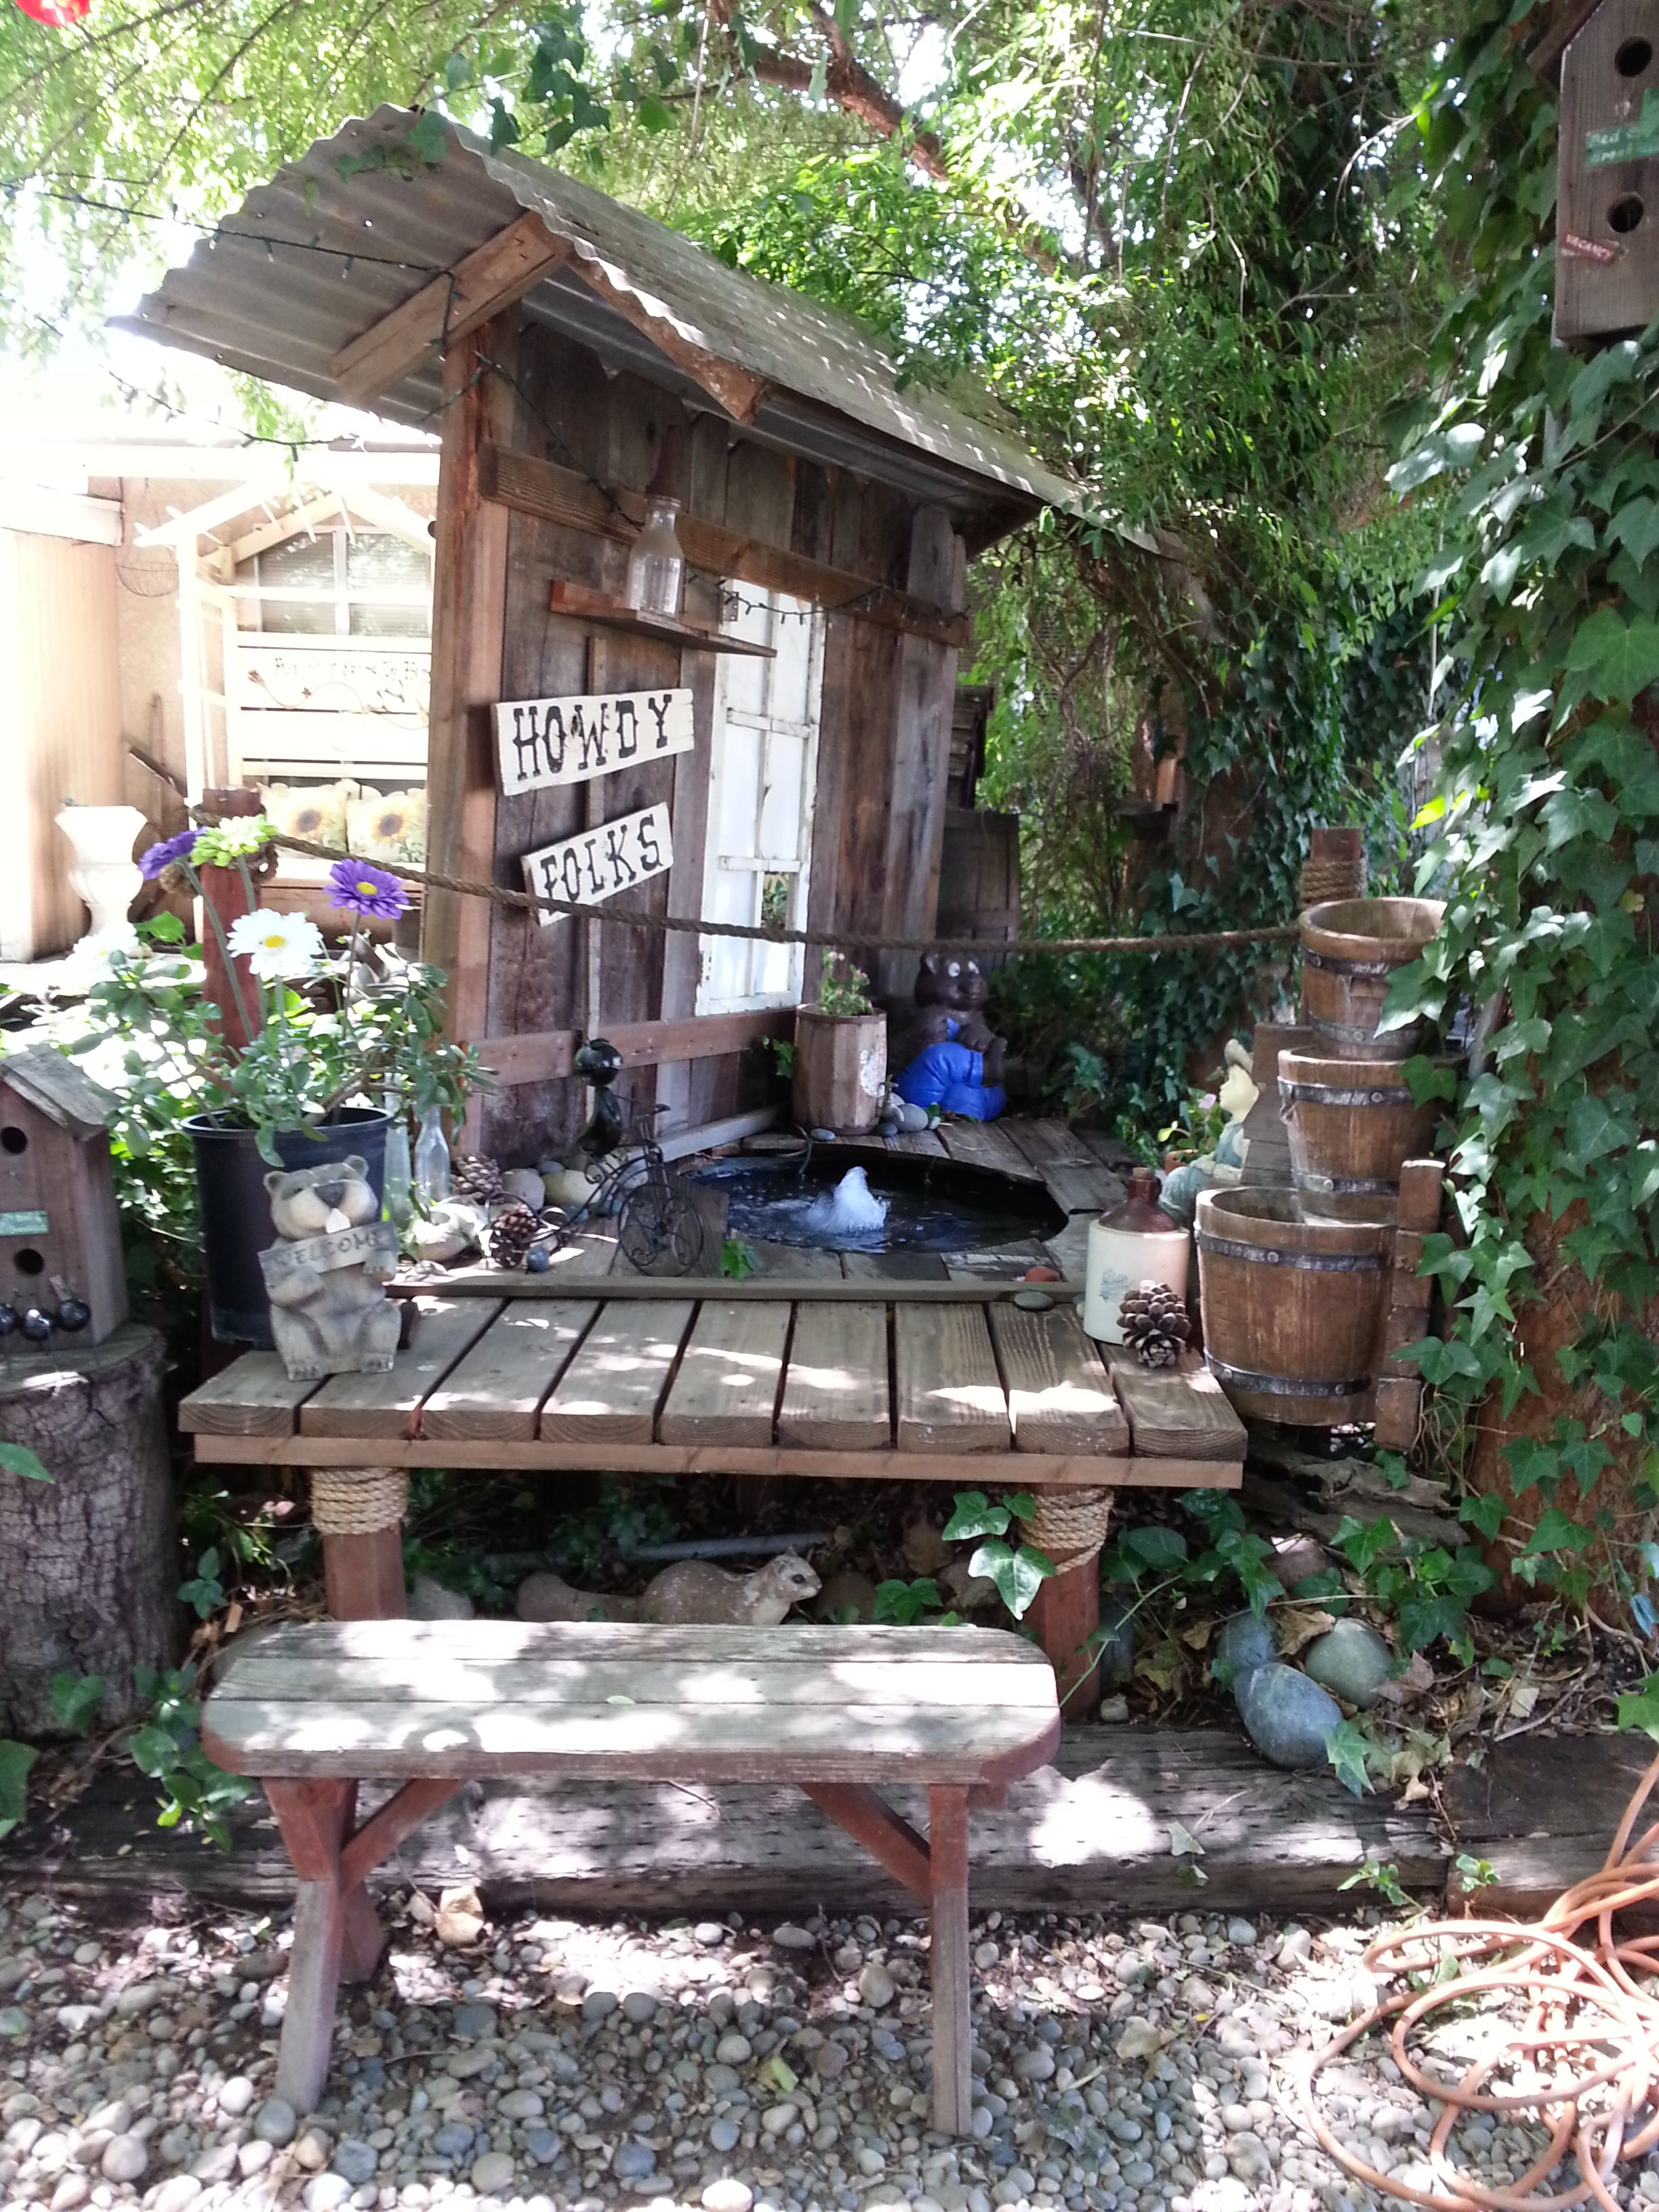 more of backyard old fence wood ideas (With images ... on Backyard Wooden Fence Decorating Ideas id=27423